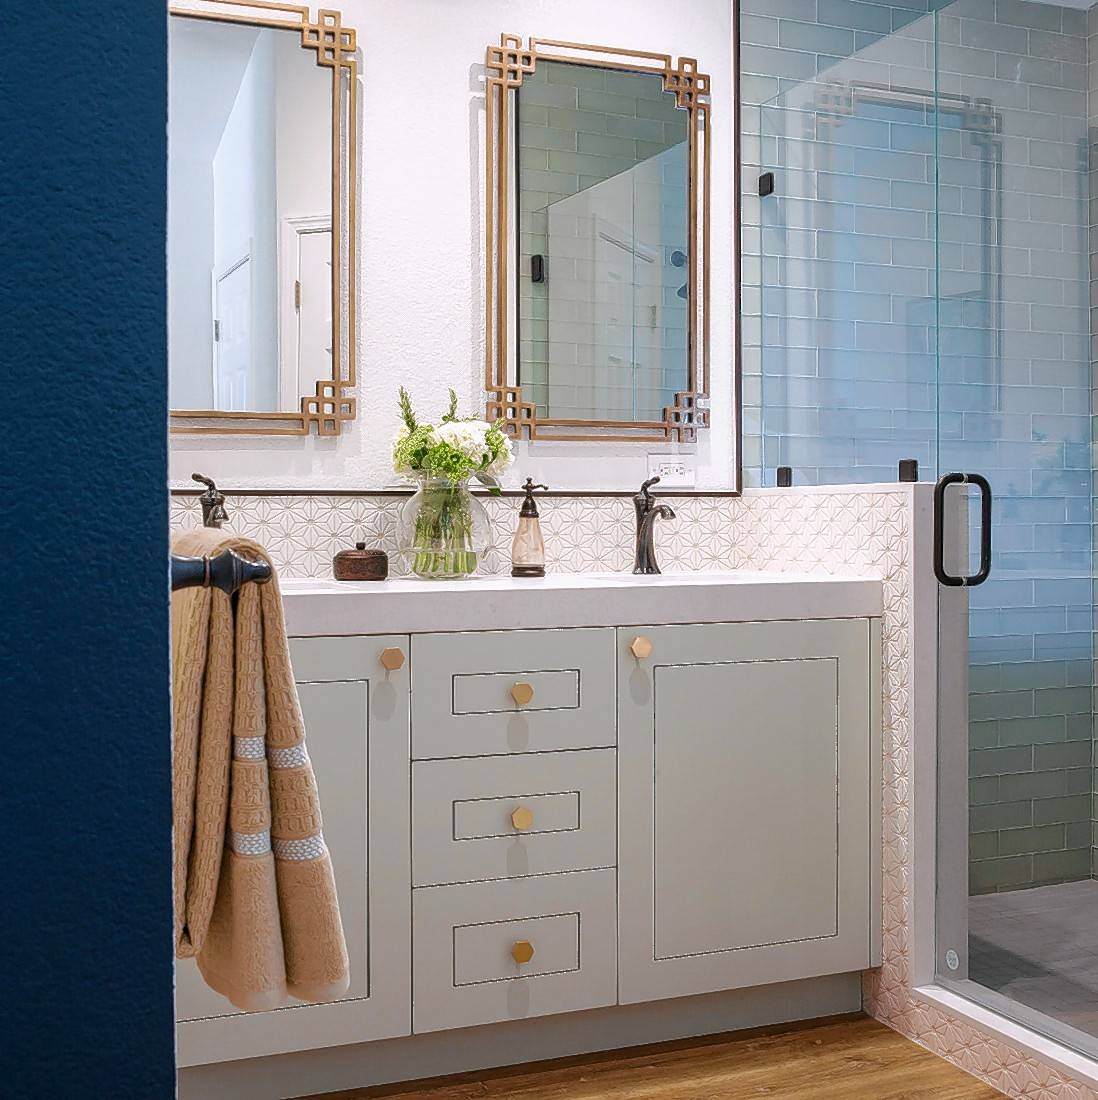 The San Jose bathroom uses a boldly painted blue alcove around the toilet for a pop of color in a master bath composed of muted whites and greens.